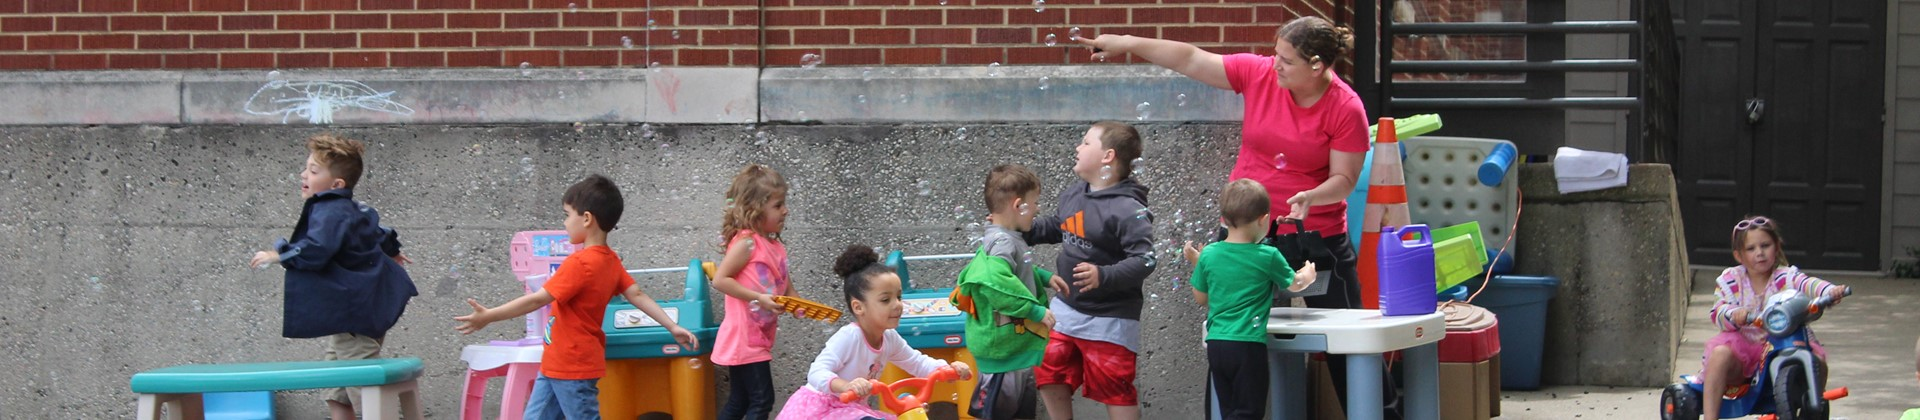 Bubble Fun in our Preschool!